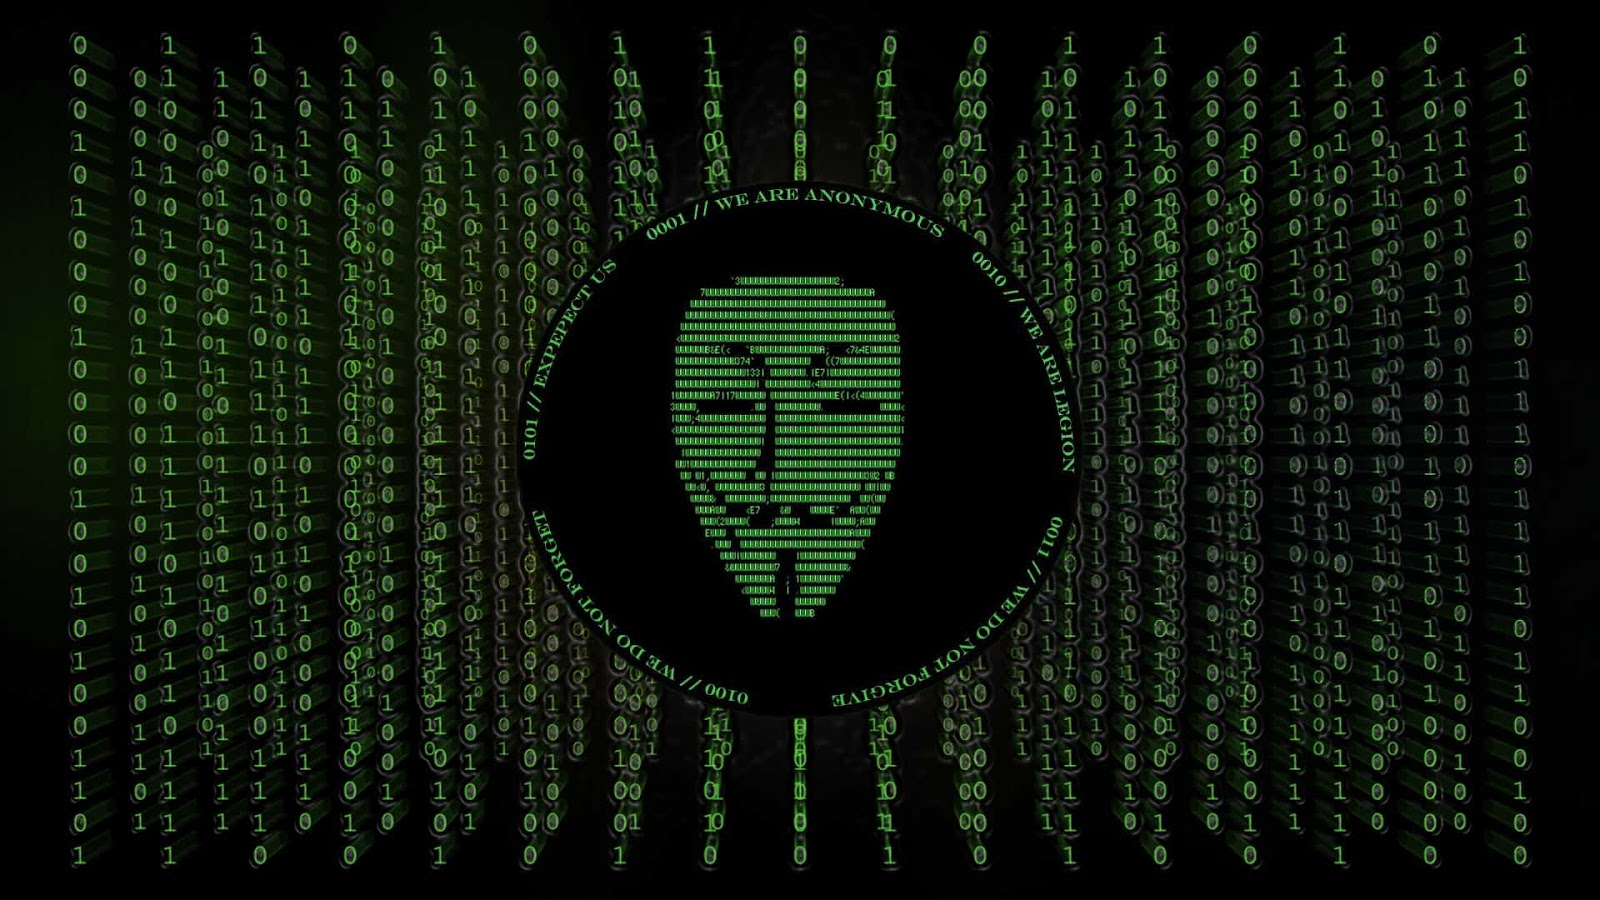 Certified Ethical Hacker Wallpaper For Ceh|certified Ethical